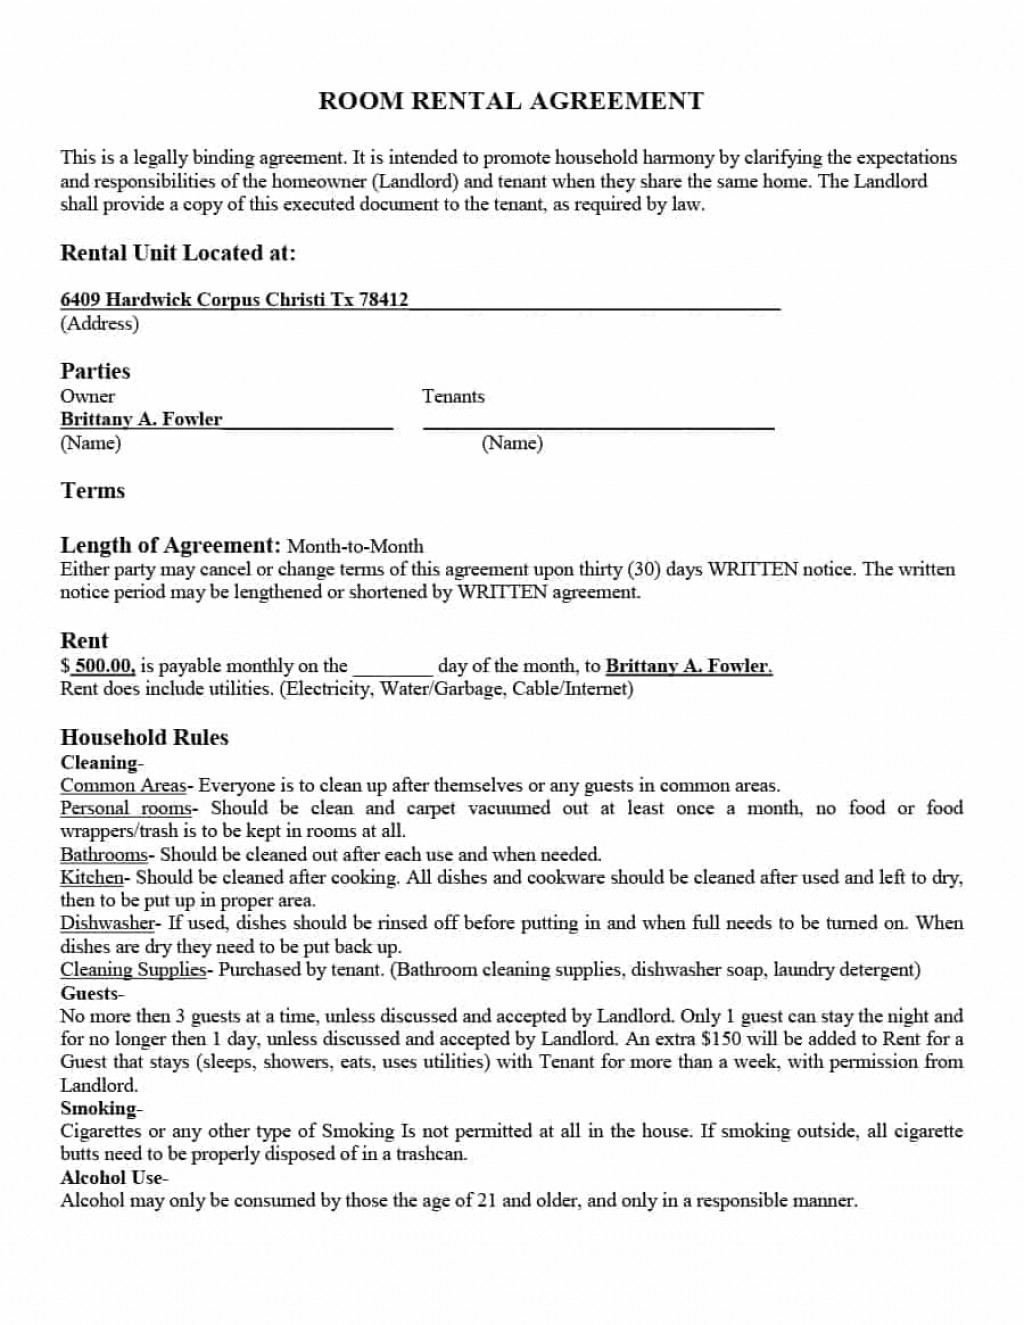 Room Rental Agreement Template Sample  Word Doc Malaysia Singapore PdfLarge